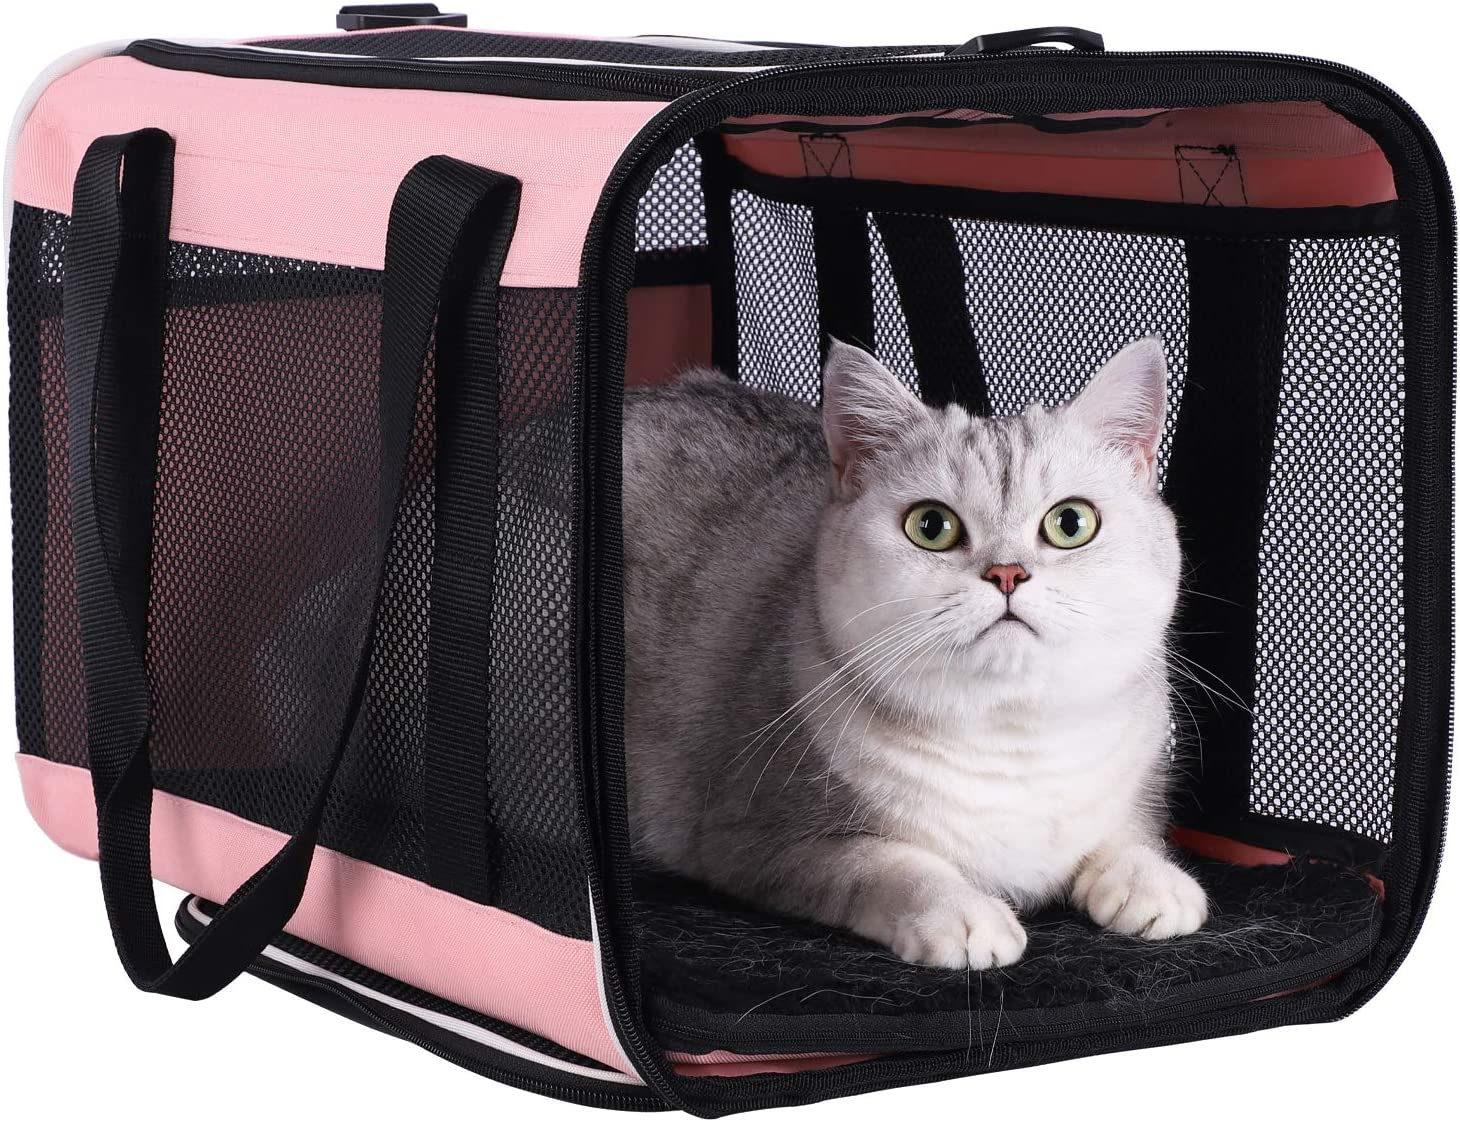 petisfam Top Load Pet Carrier for Large and Medium Cats, Small Dogs. Easy to get cat in, Carry, Storage, Clean and Escape Proof